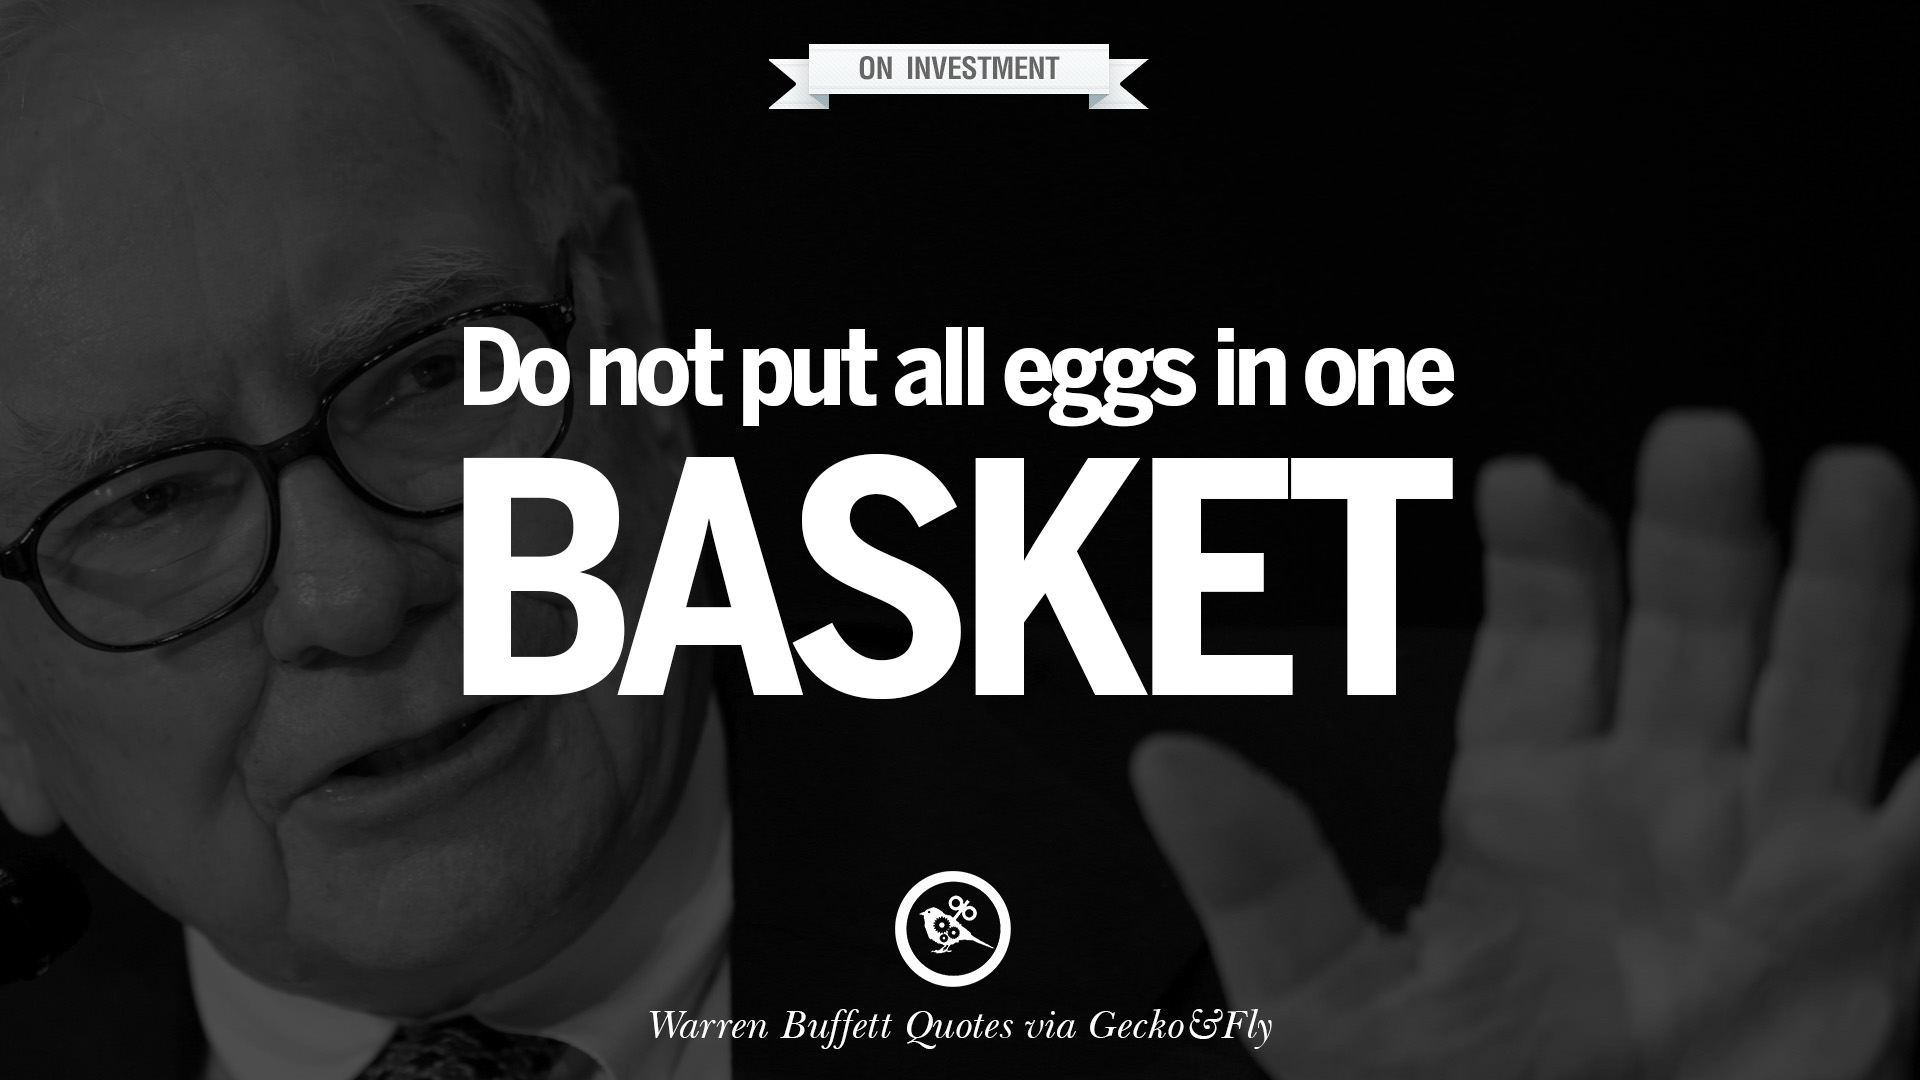 Money Making Quotes Wallpapers 6 Excellent Quotes By Warren Buffet On Investment And